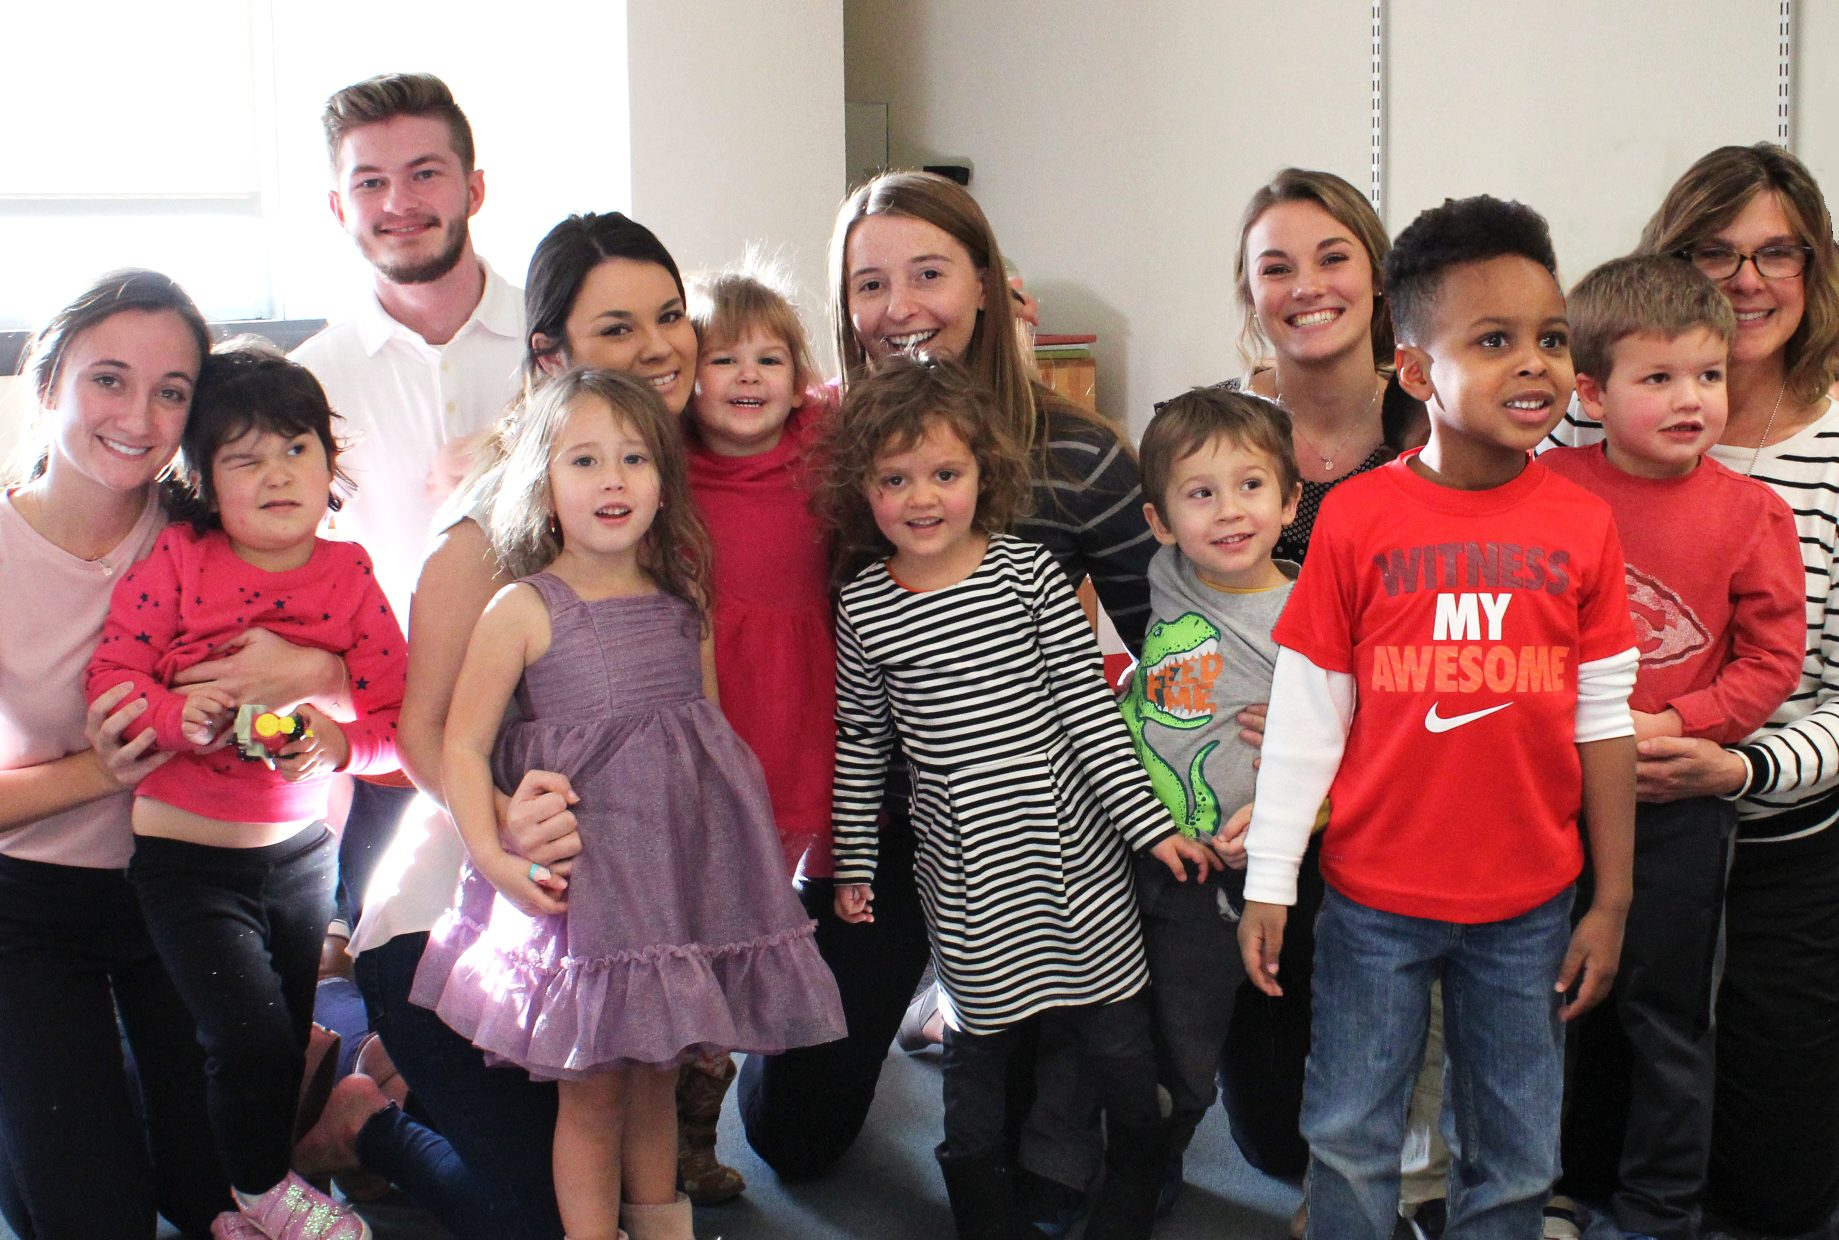 Greta Hull, SLHS Students, and Several Preschoolers pose for a photo on Greta Hull's last day